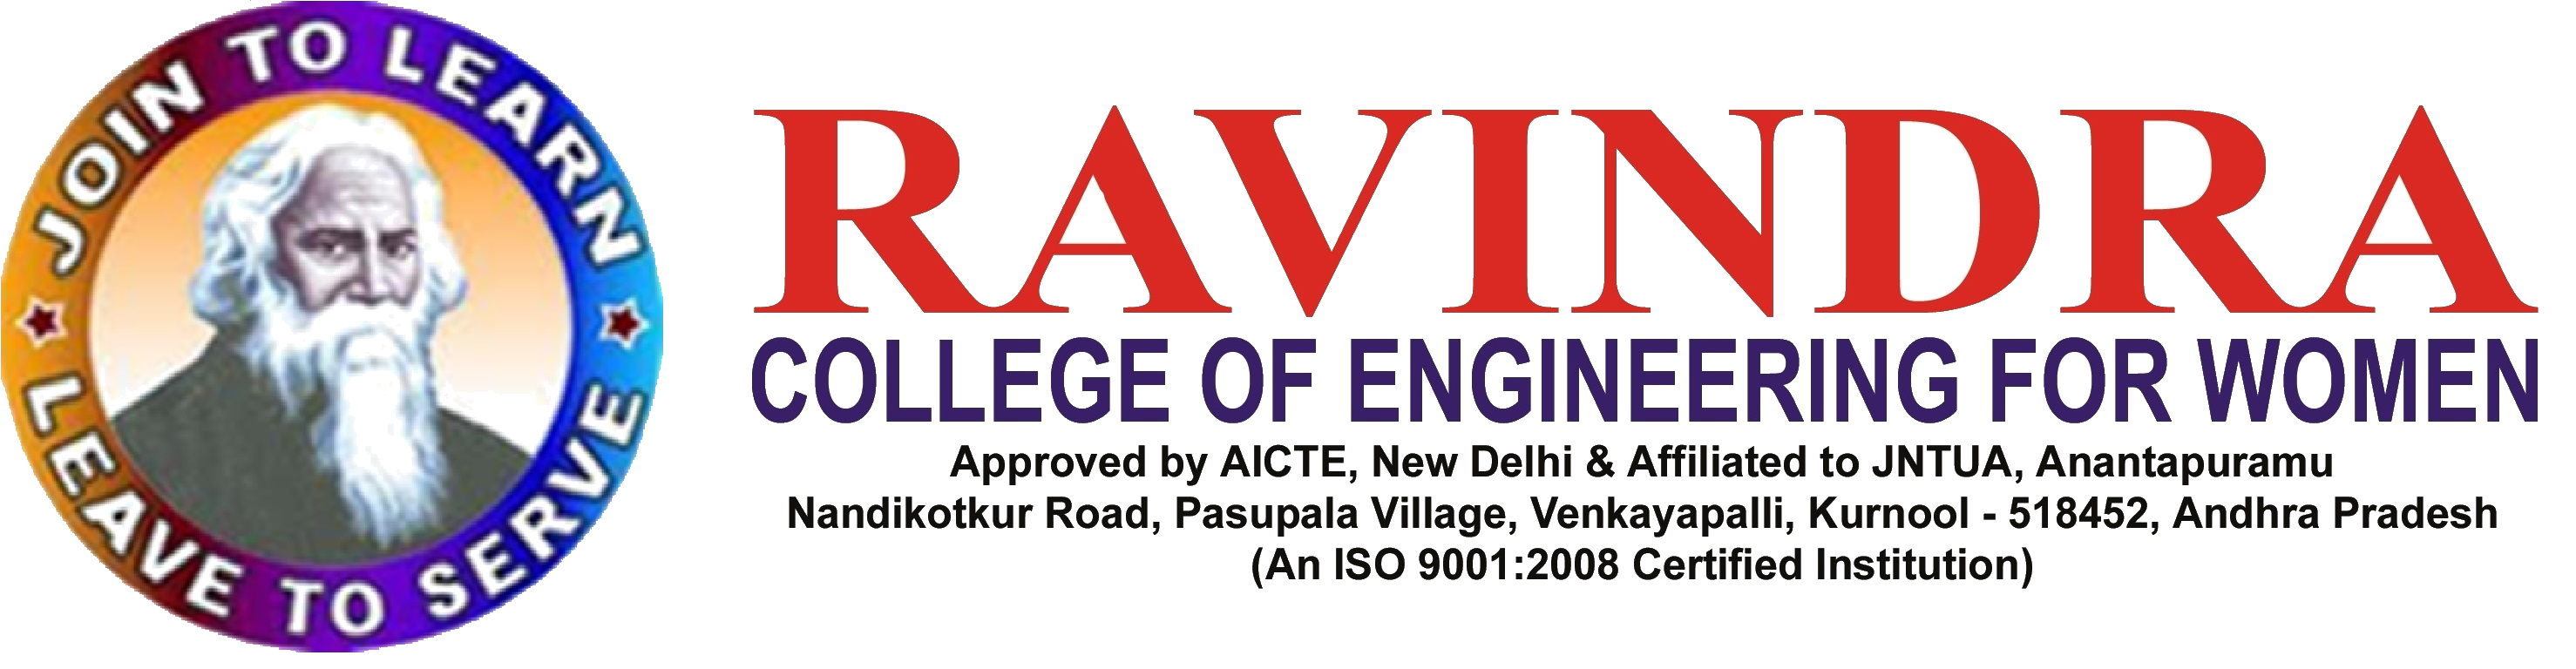 Ravindra College of Engineering for Women